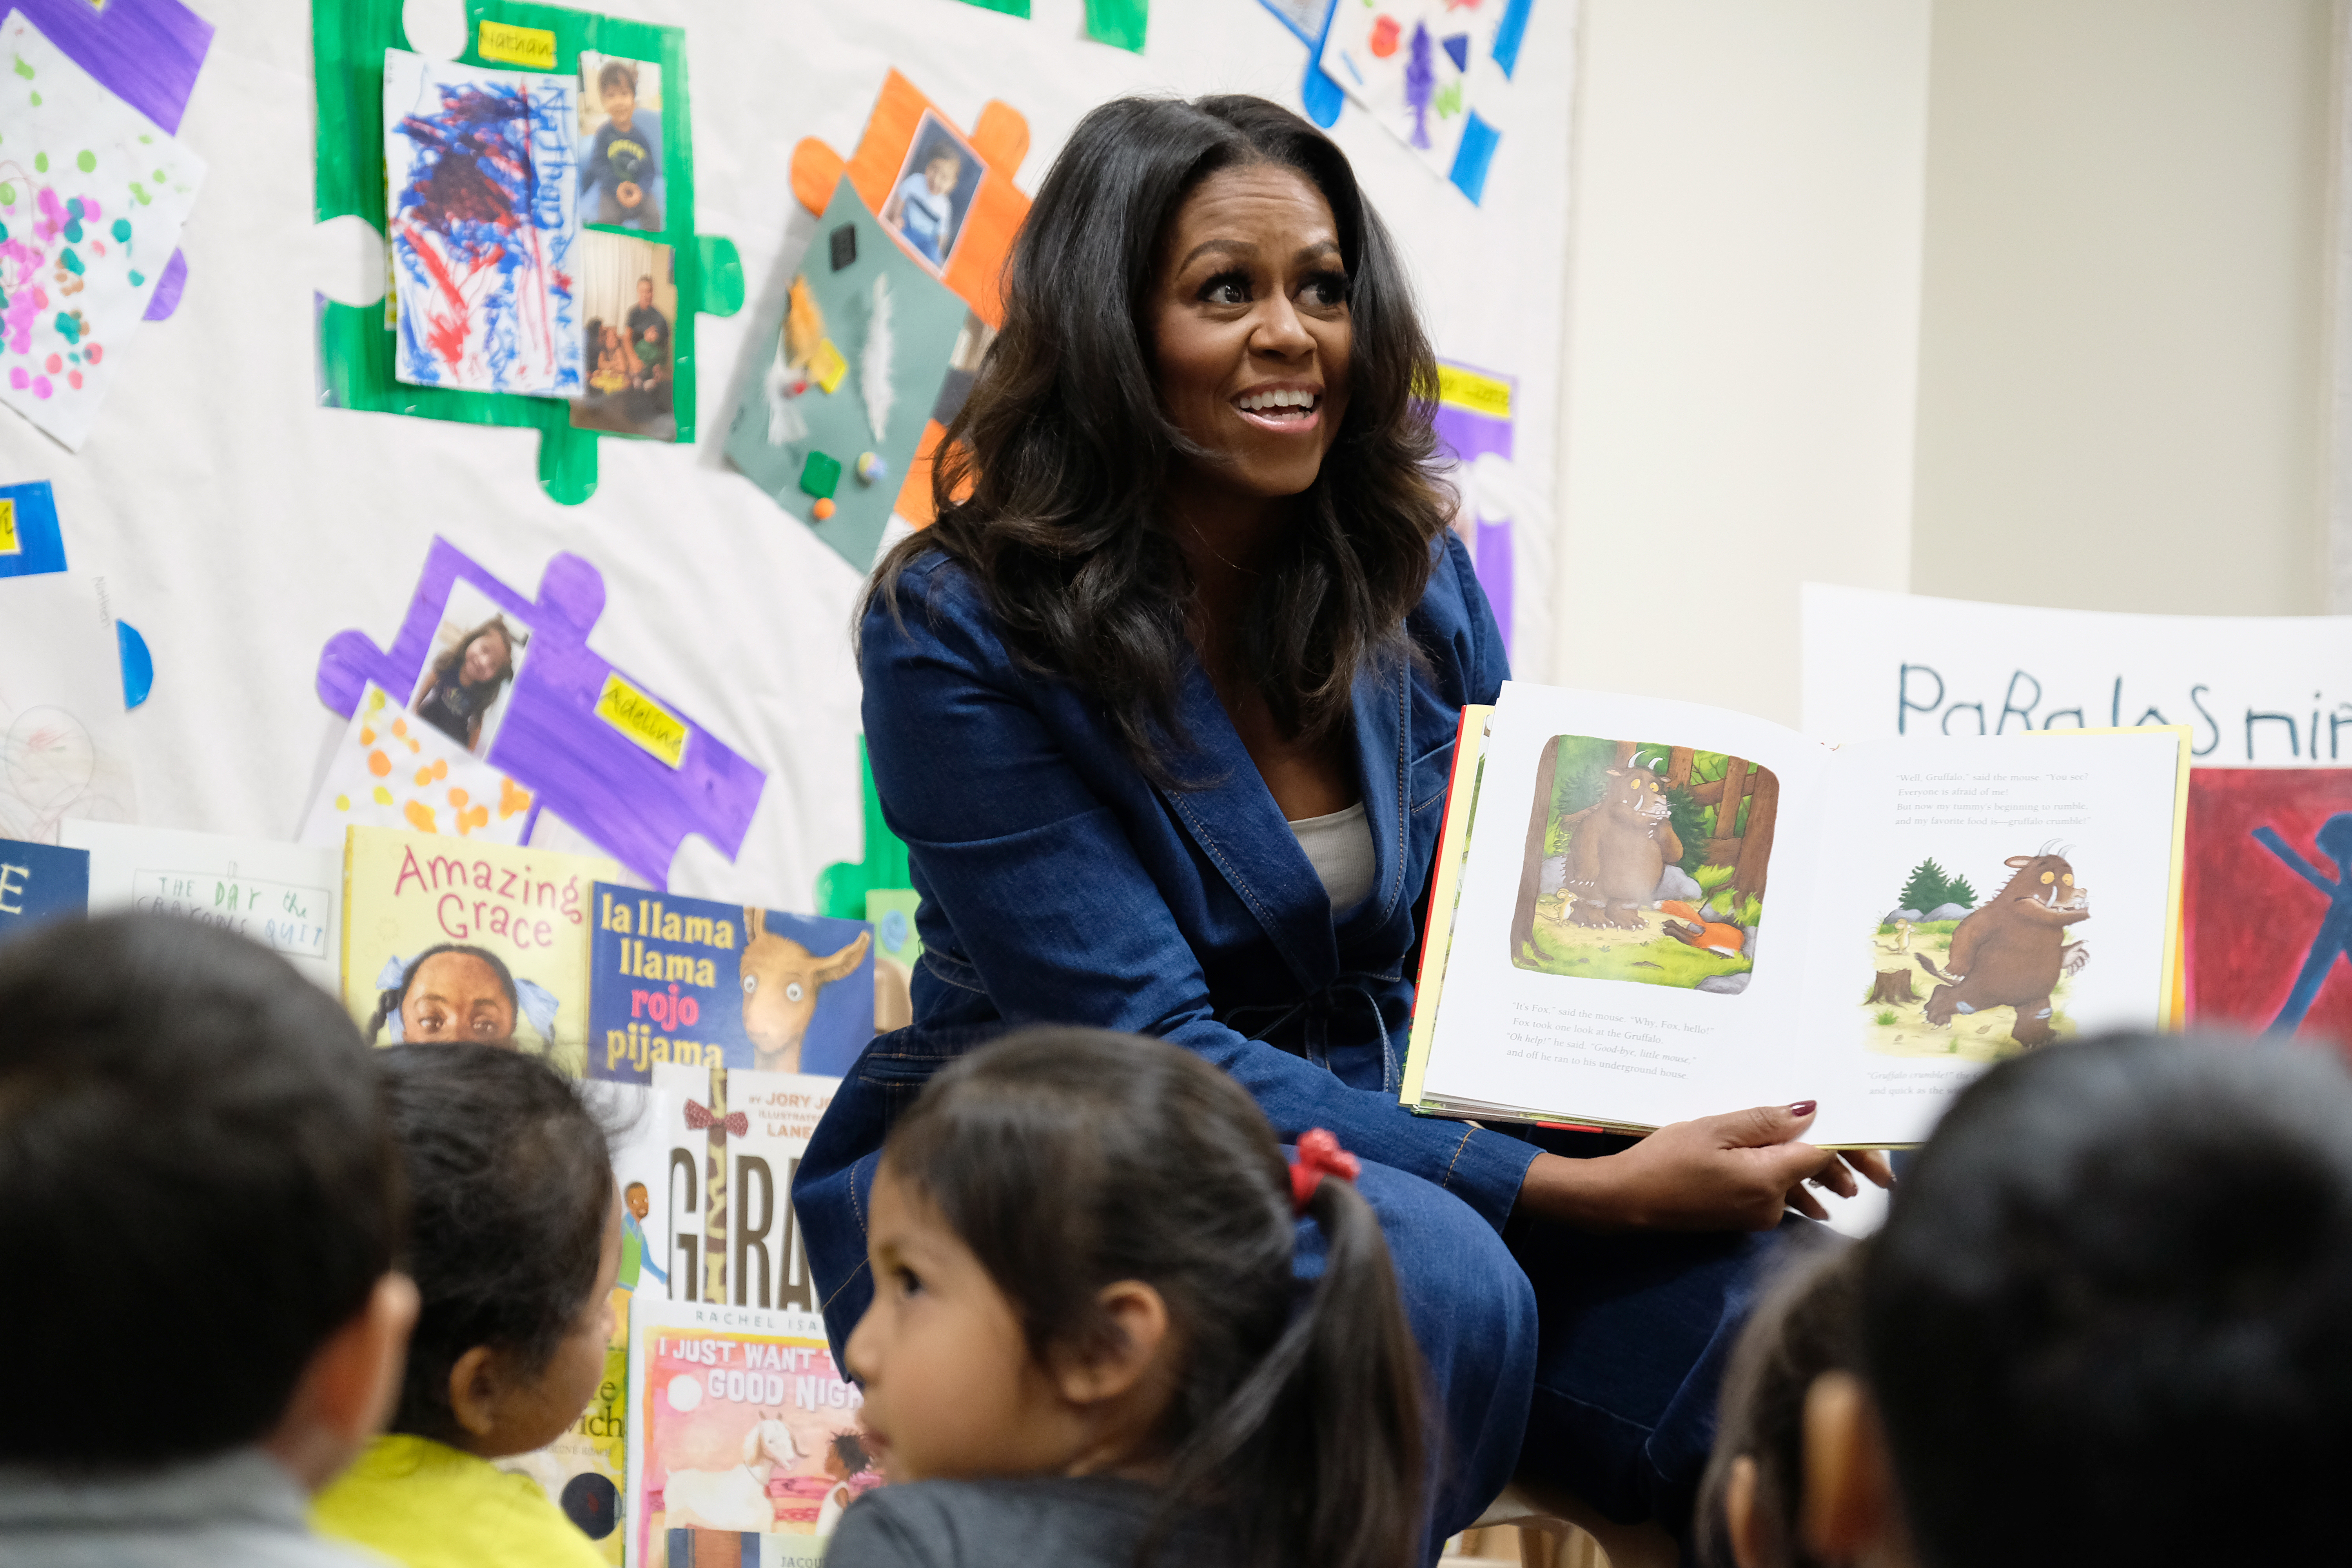 Trump supporters vandalize a Little Free Library dedicated to Michelle Obama